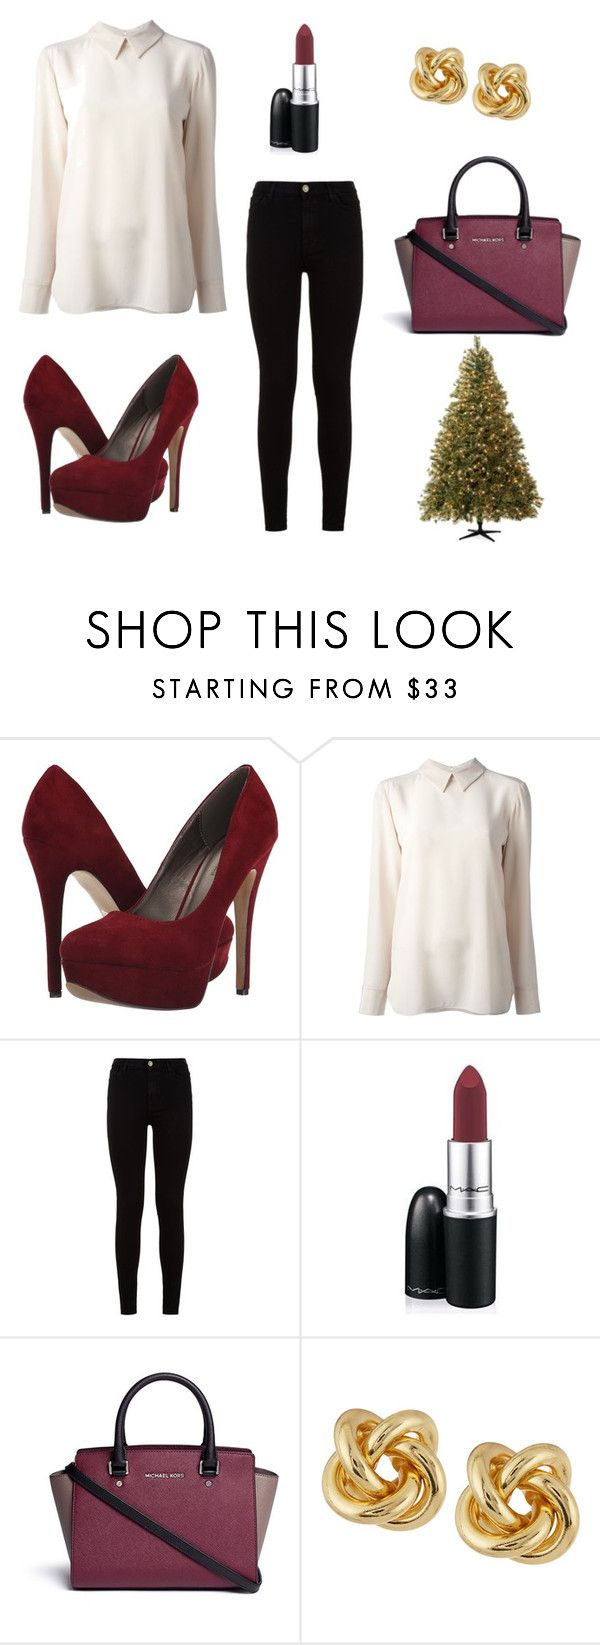 """Christmas dinner outfit idea"" by jedlickova-viki ❤ liked on Polyvore featuring Michael Antonio, STELLA McCARTNEY, 7 For All Mankind, MAC Cosmetics, Michael Kors and R.J. Graziano"